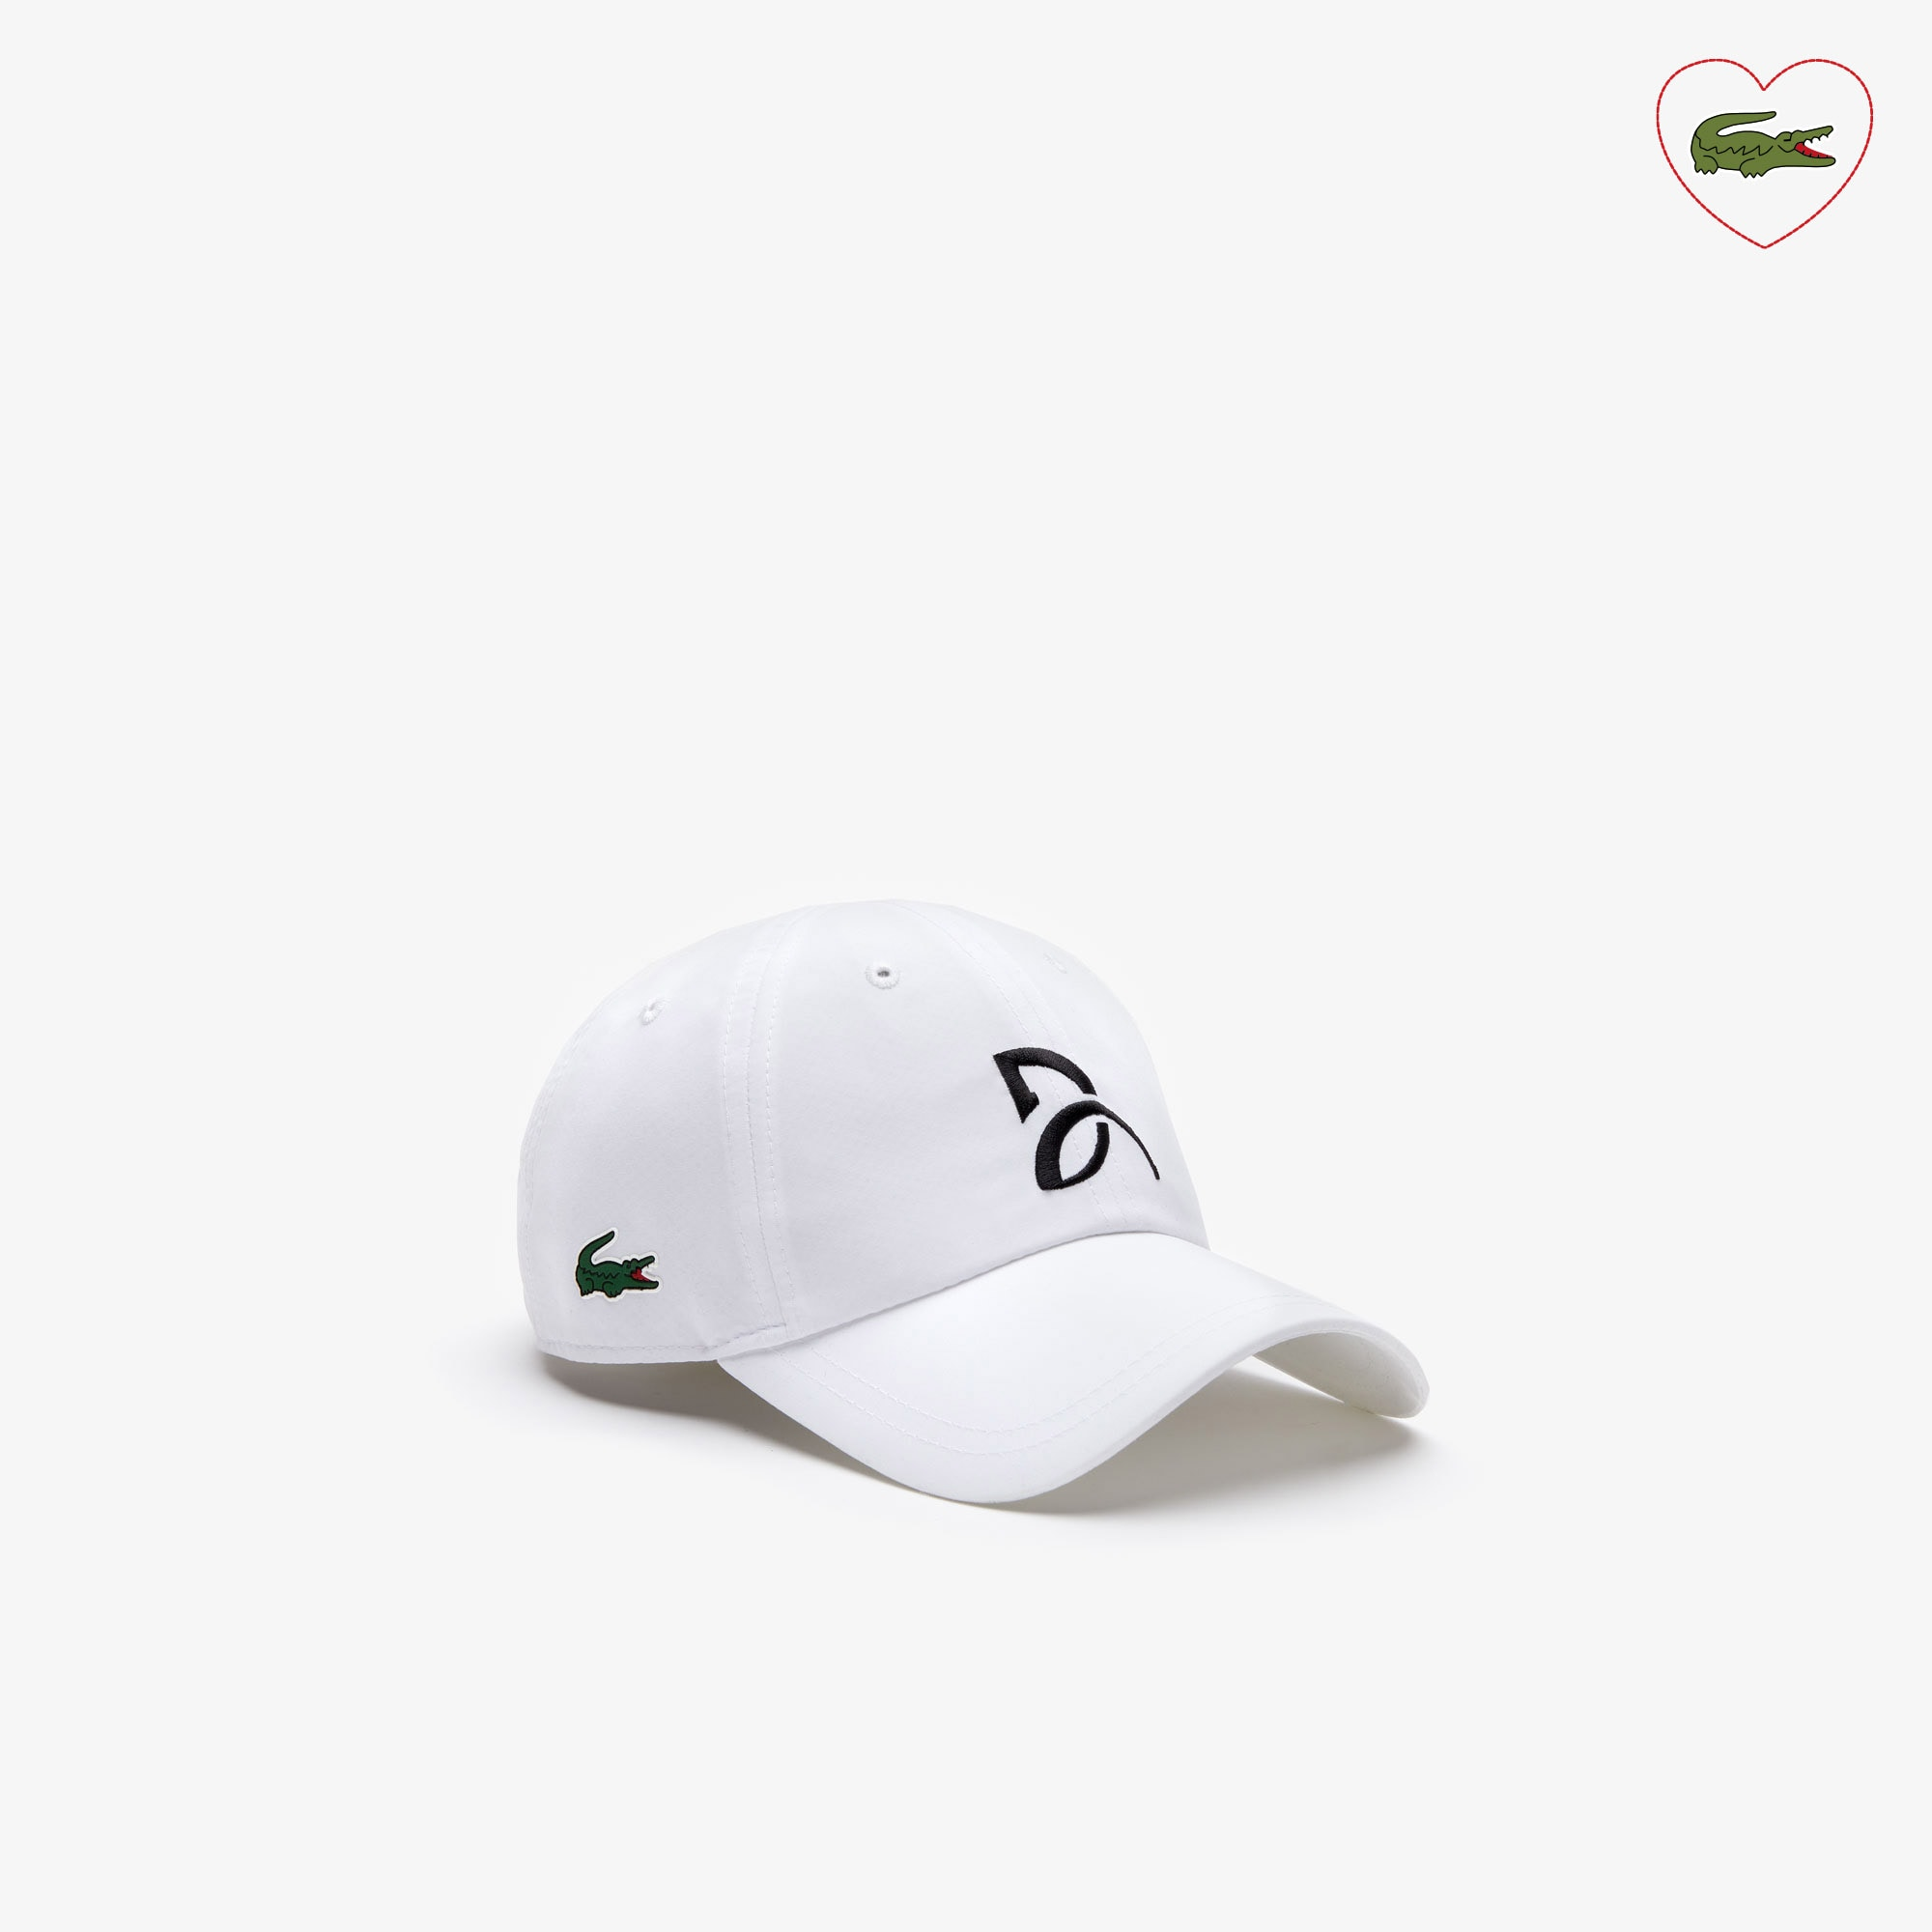 Men's Lacoste Sport Tennis Microfiber - Support With Style Collection for Novak Djokovic